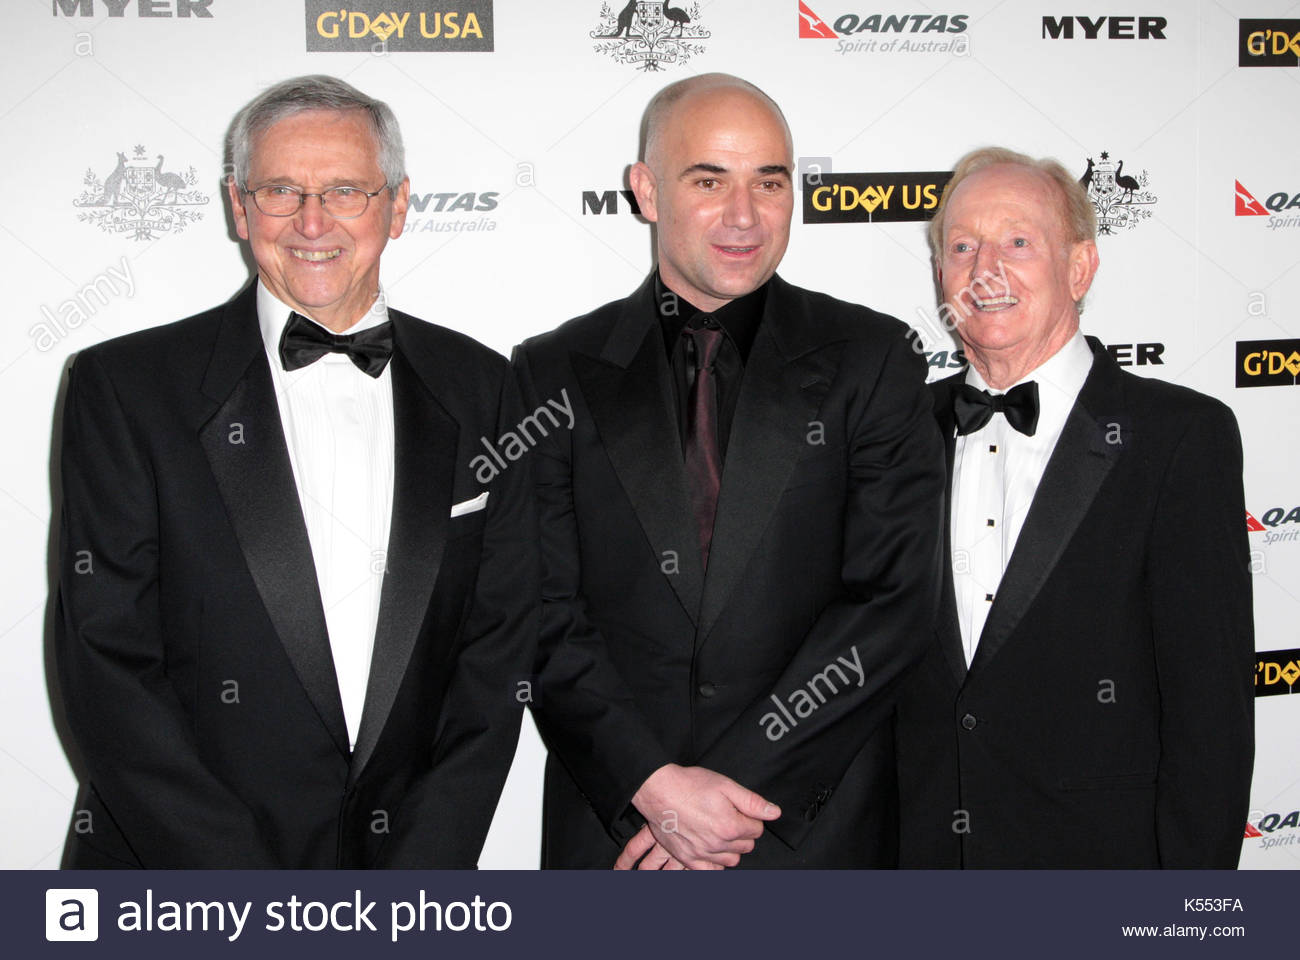 Roy Emerson Stock s & Roy Emerson Stock Alamy